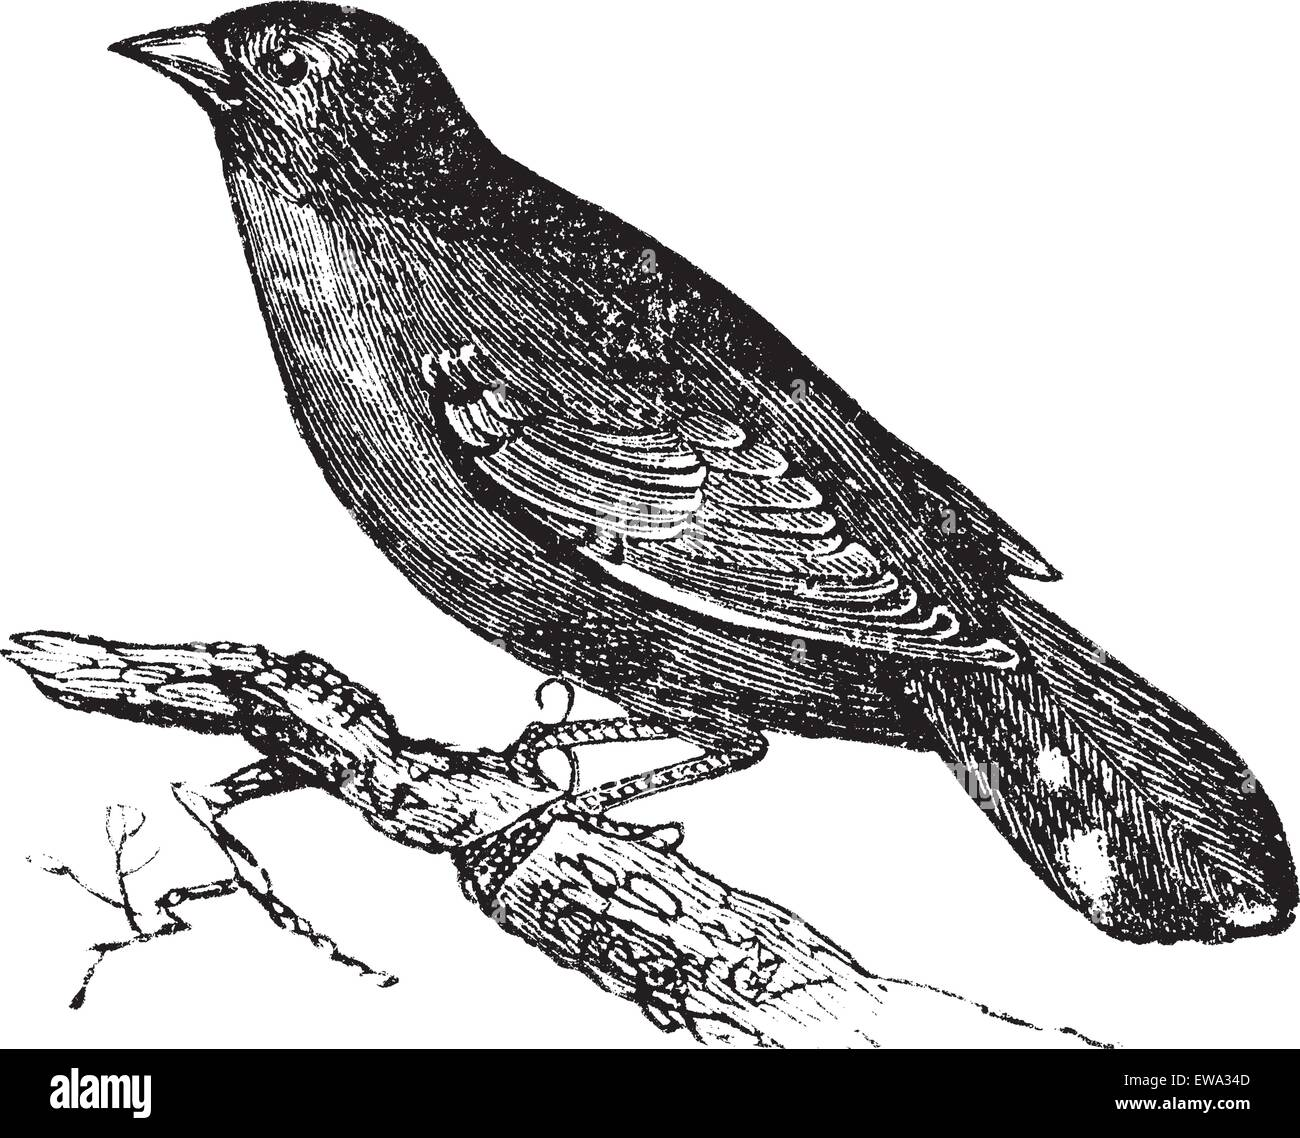 Guianan Red-Cotinga or Phoenicircus carnifex, vintage engraving. Old engraved illustration of Guianan Red-Cotinga - Stock Vector